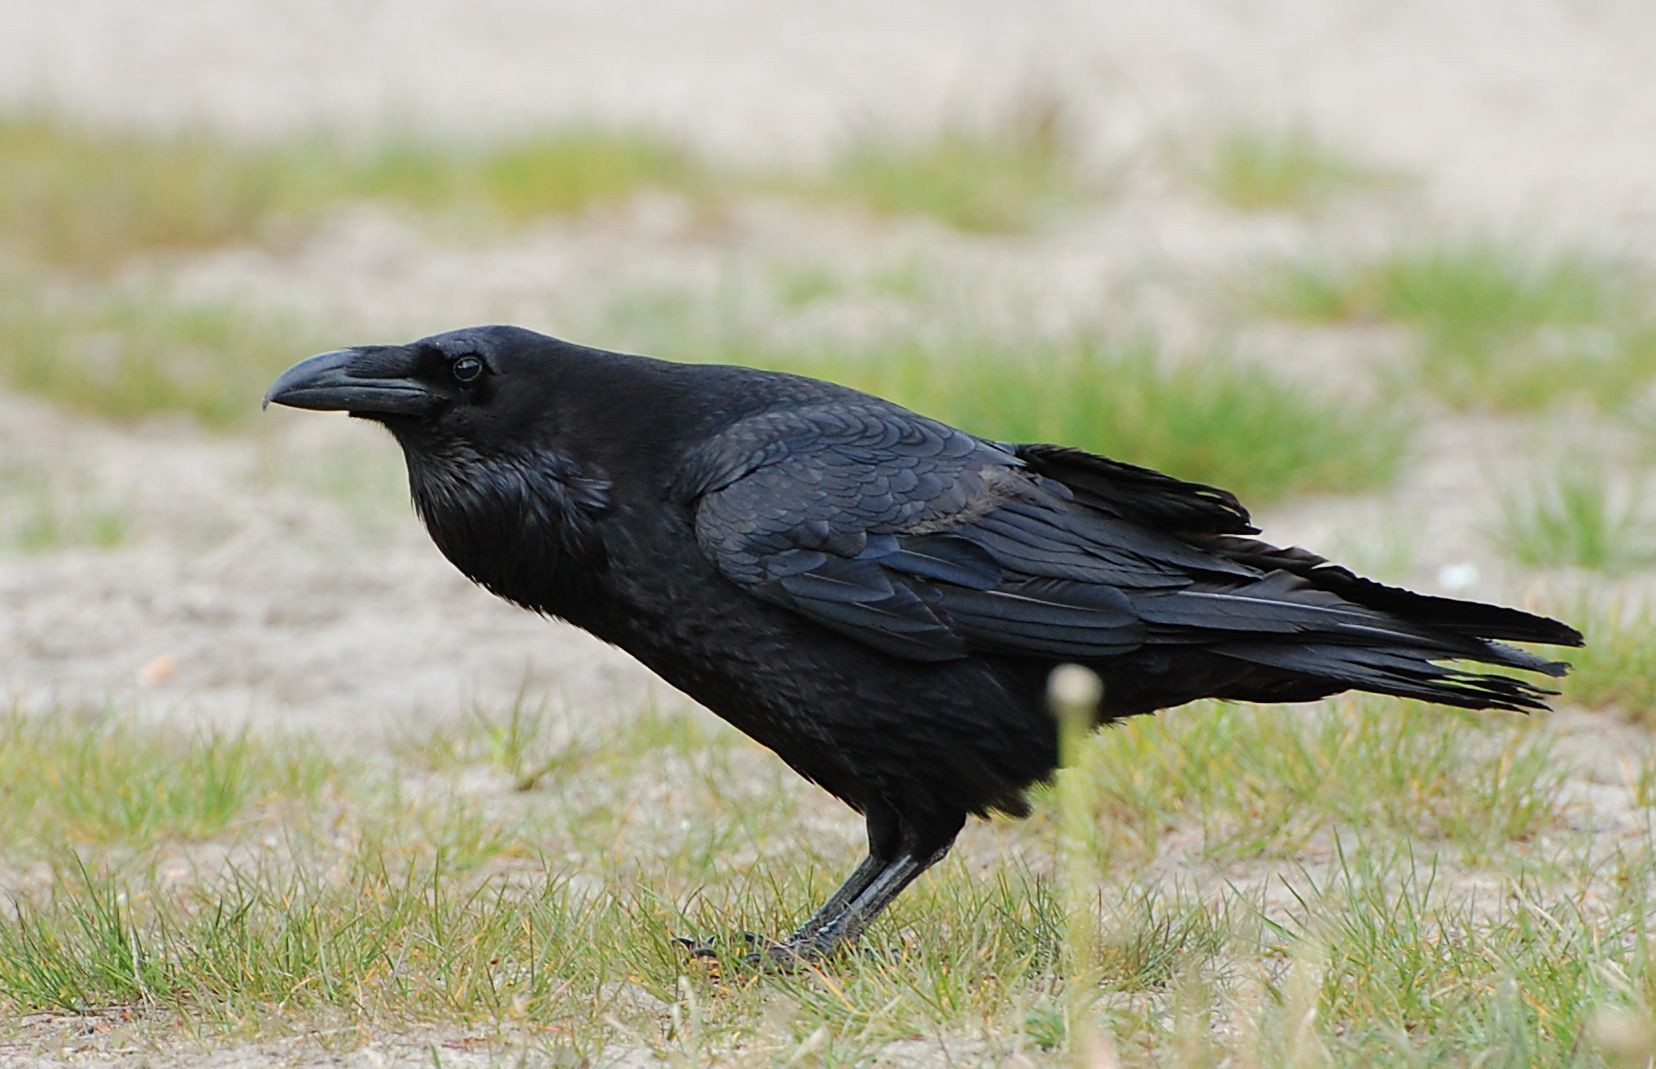 Caw vs  Kraa: the meaning in the calls of crows and ravens